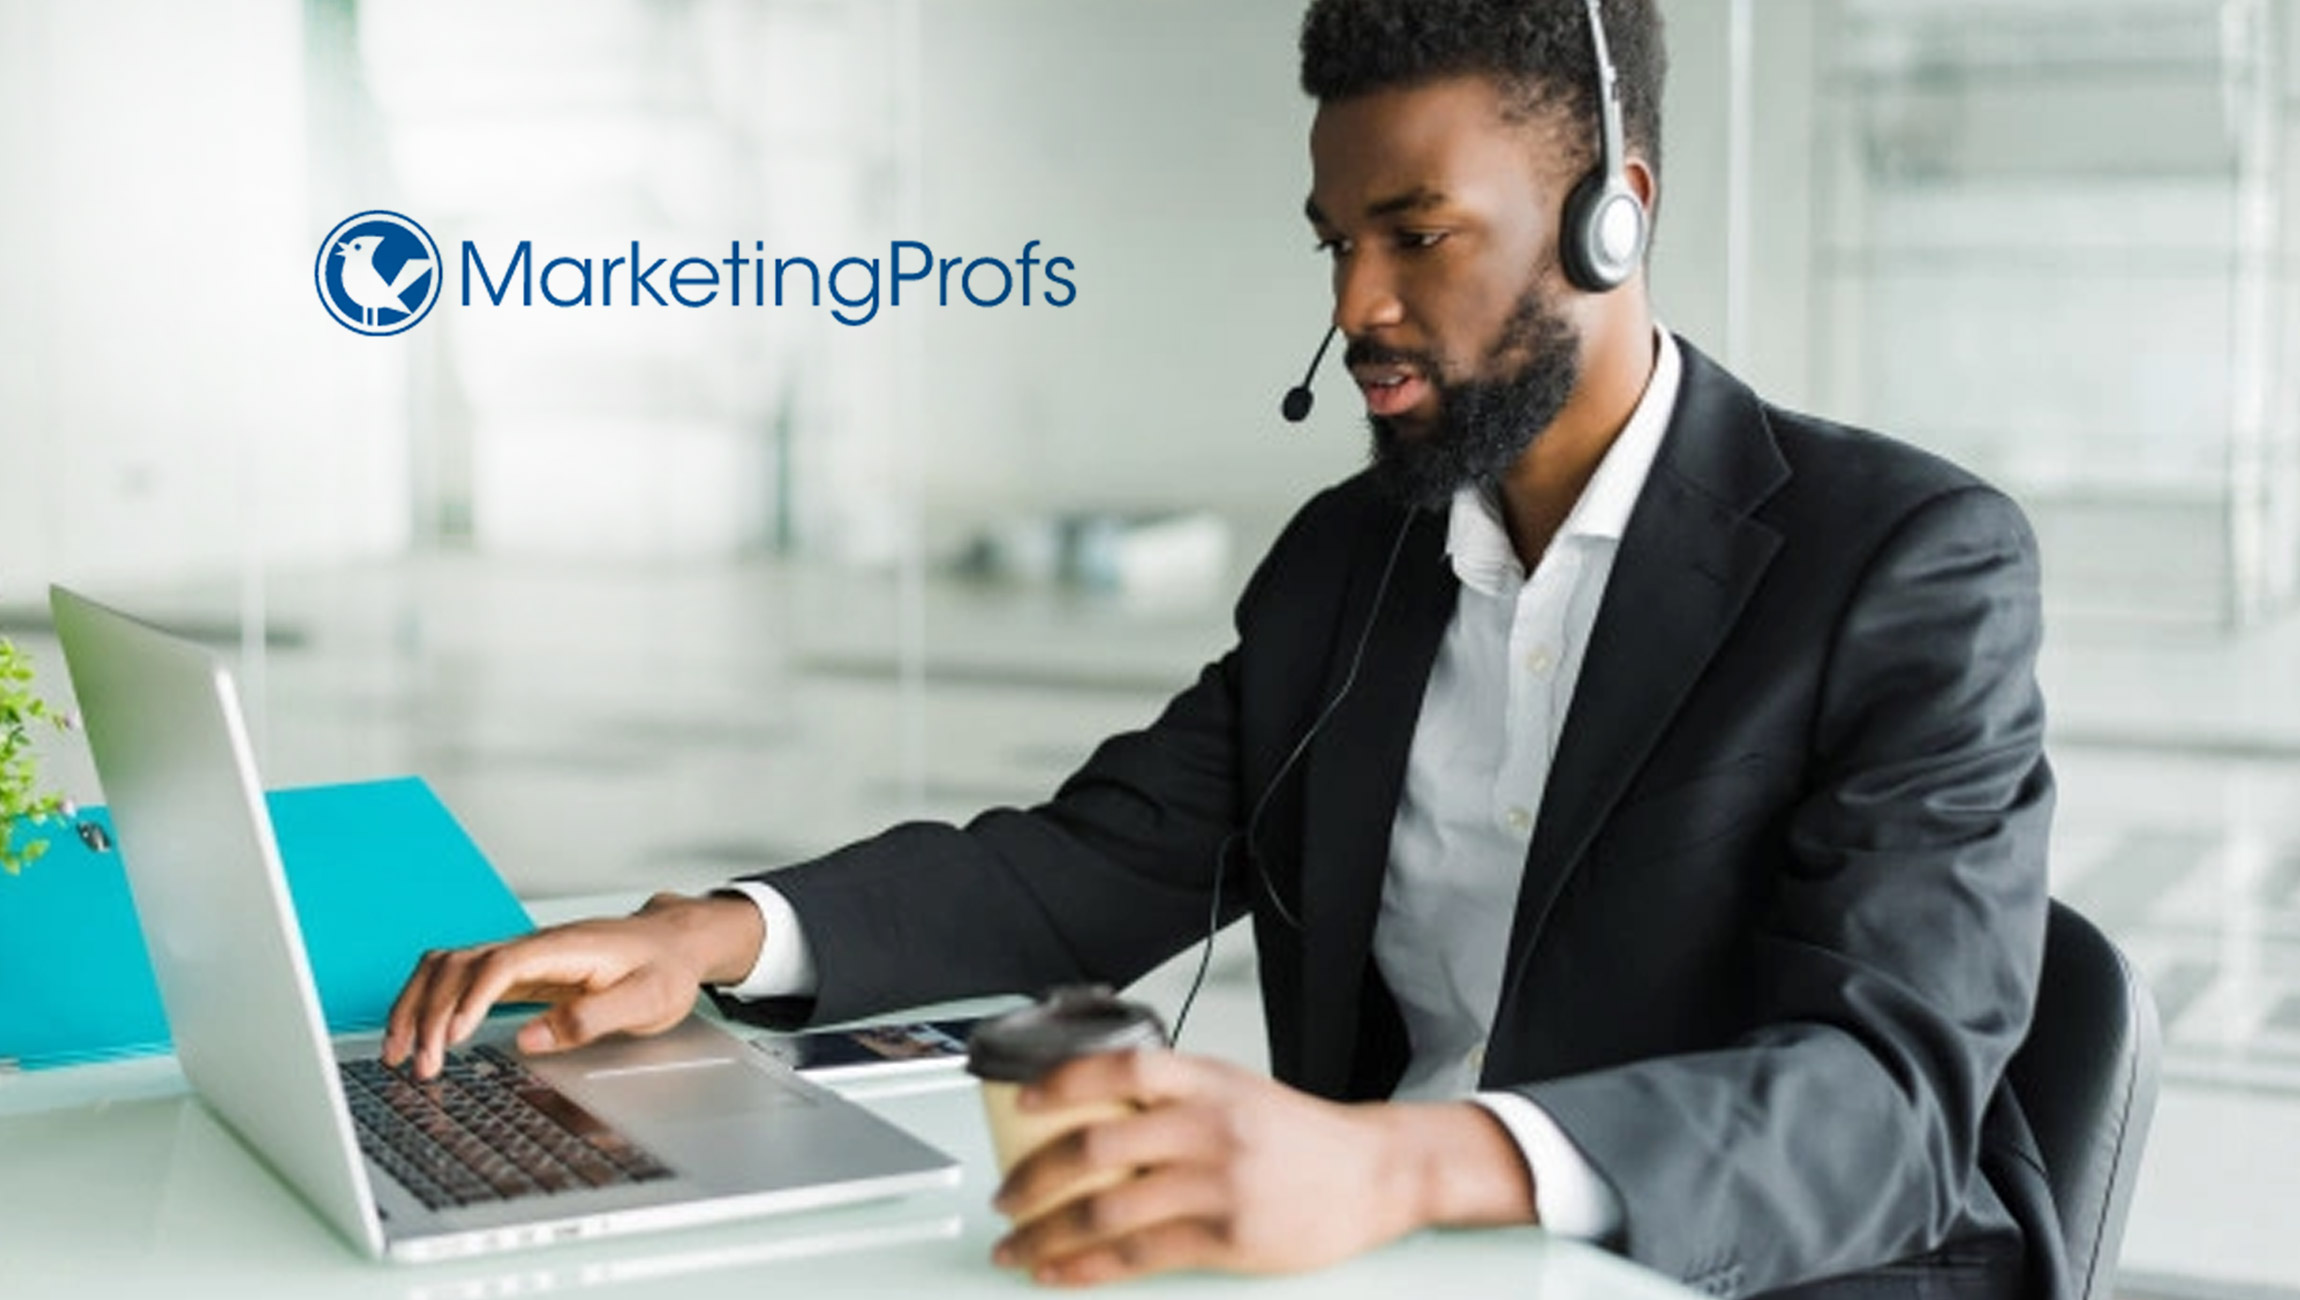 MarketingProfs B2B Forum Online to Provide Marketers With the Skills They Need to Meet Today's Marketing Demands